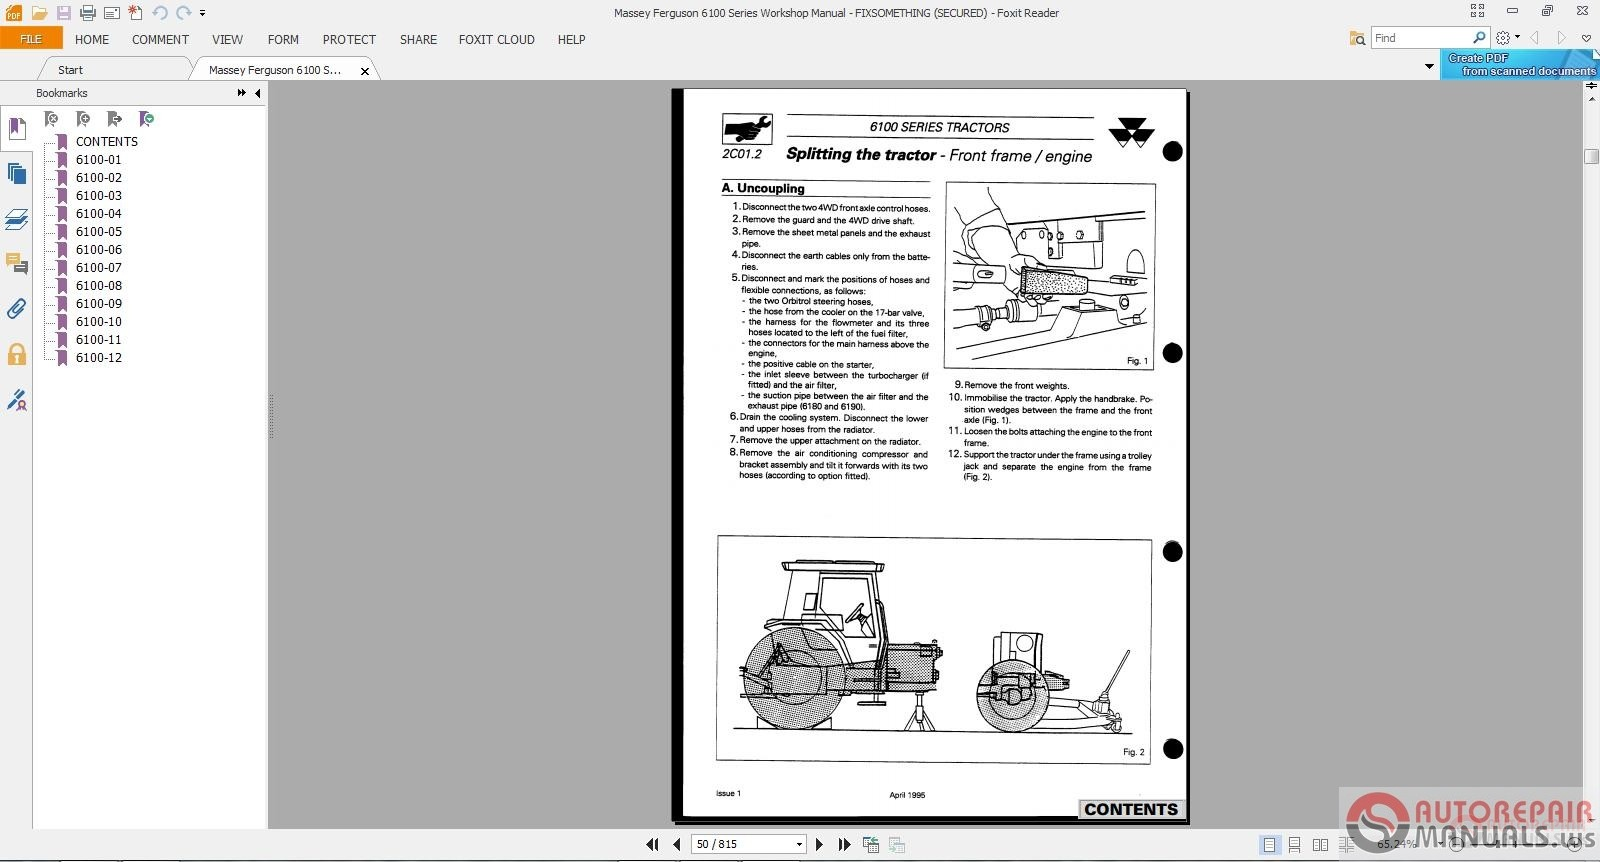 Massey Ferguson Service Complete Tractor Workshop Manual on Massey Ferguson Parts Catalog